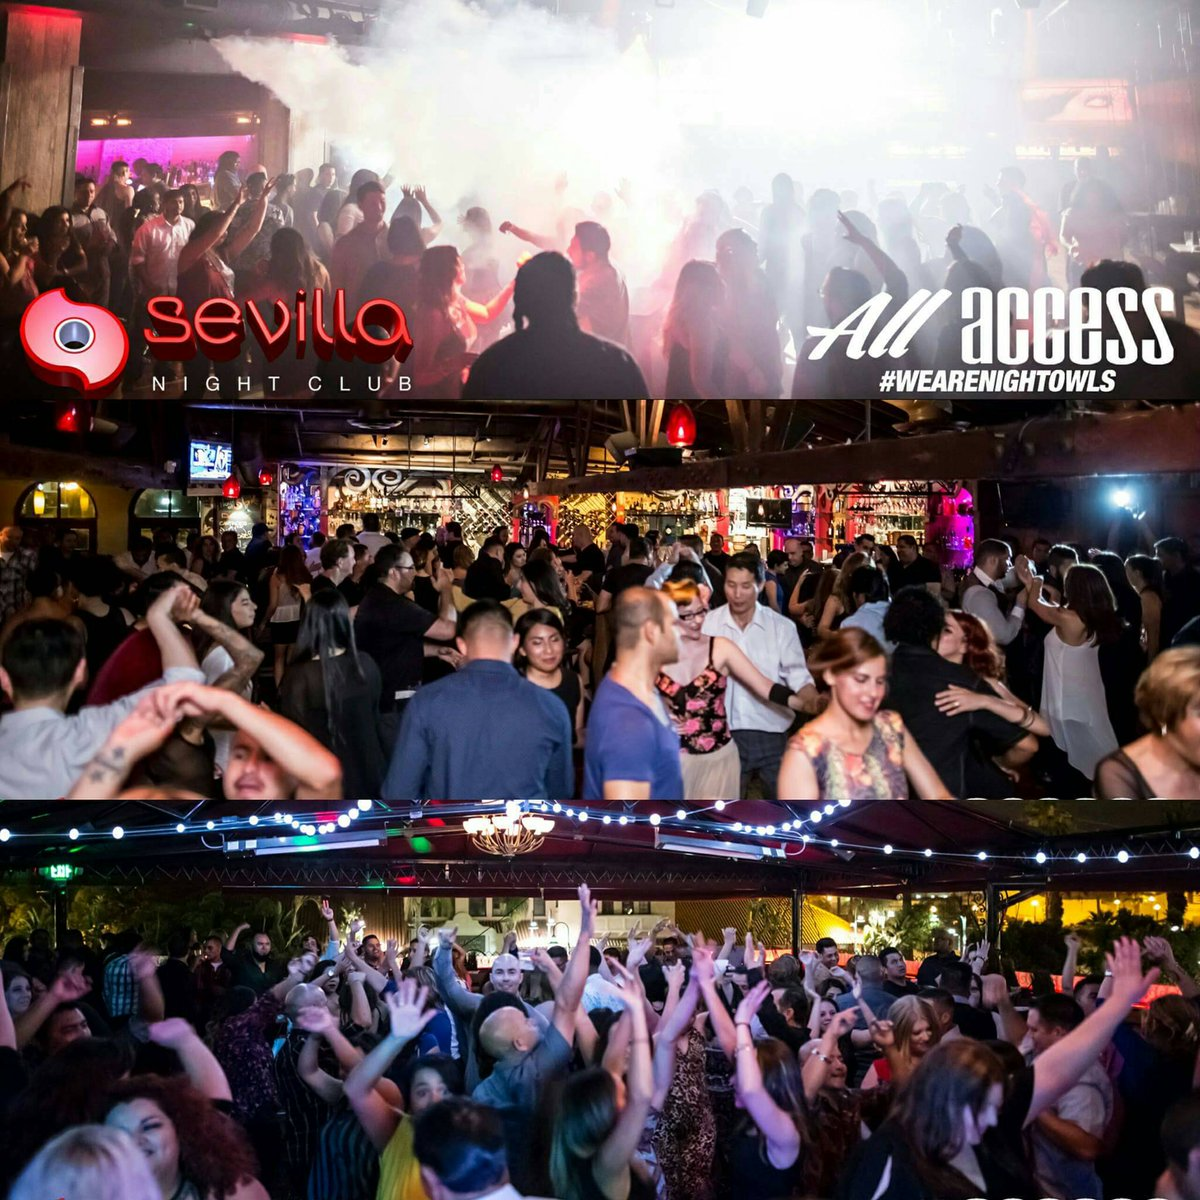 NO OTHER SATURDAY NIGHT CLUB PARTIES LIKE WE DO! 3 ROOMS, 3 VIBES, 4 BARS, Text9512347774 https://t.co/q8CyqegP9H